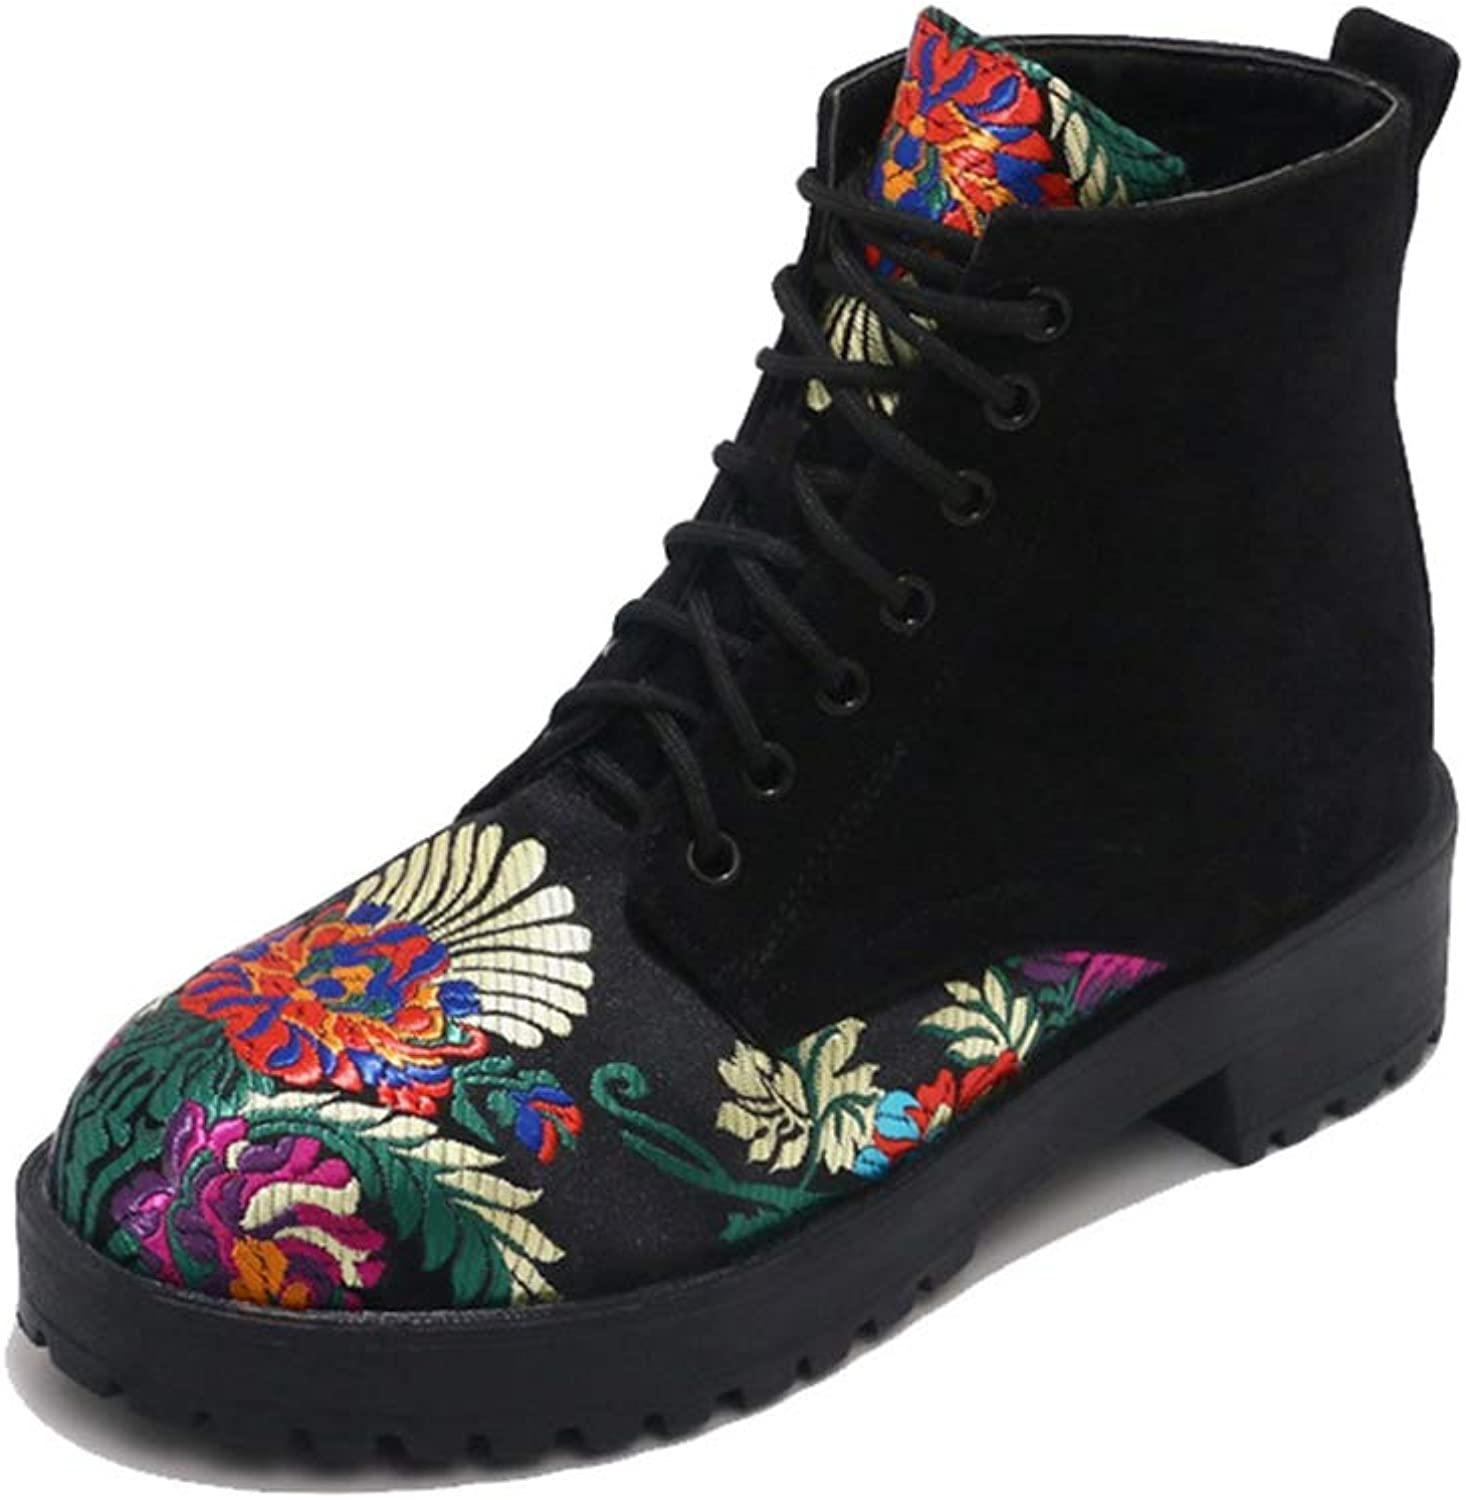 Kyle Walsh Pa Women Spring Fashion Flower Embroidery Lace Up Ankle Boots Motorcycle Booties Black Female Suede Casual shoes